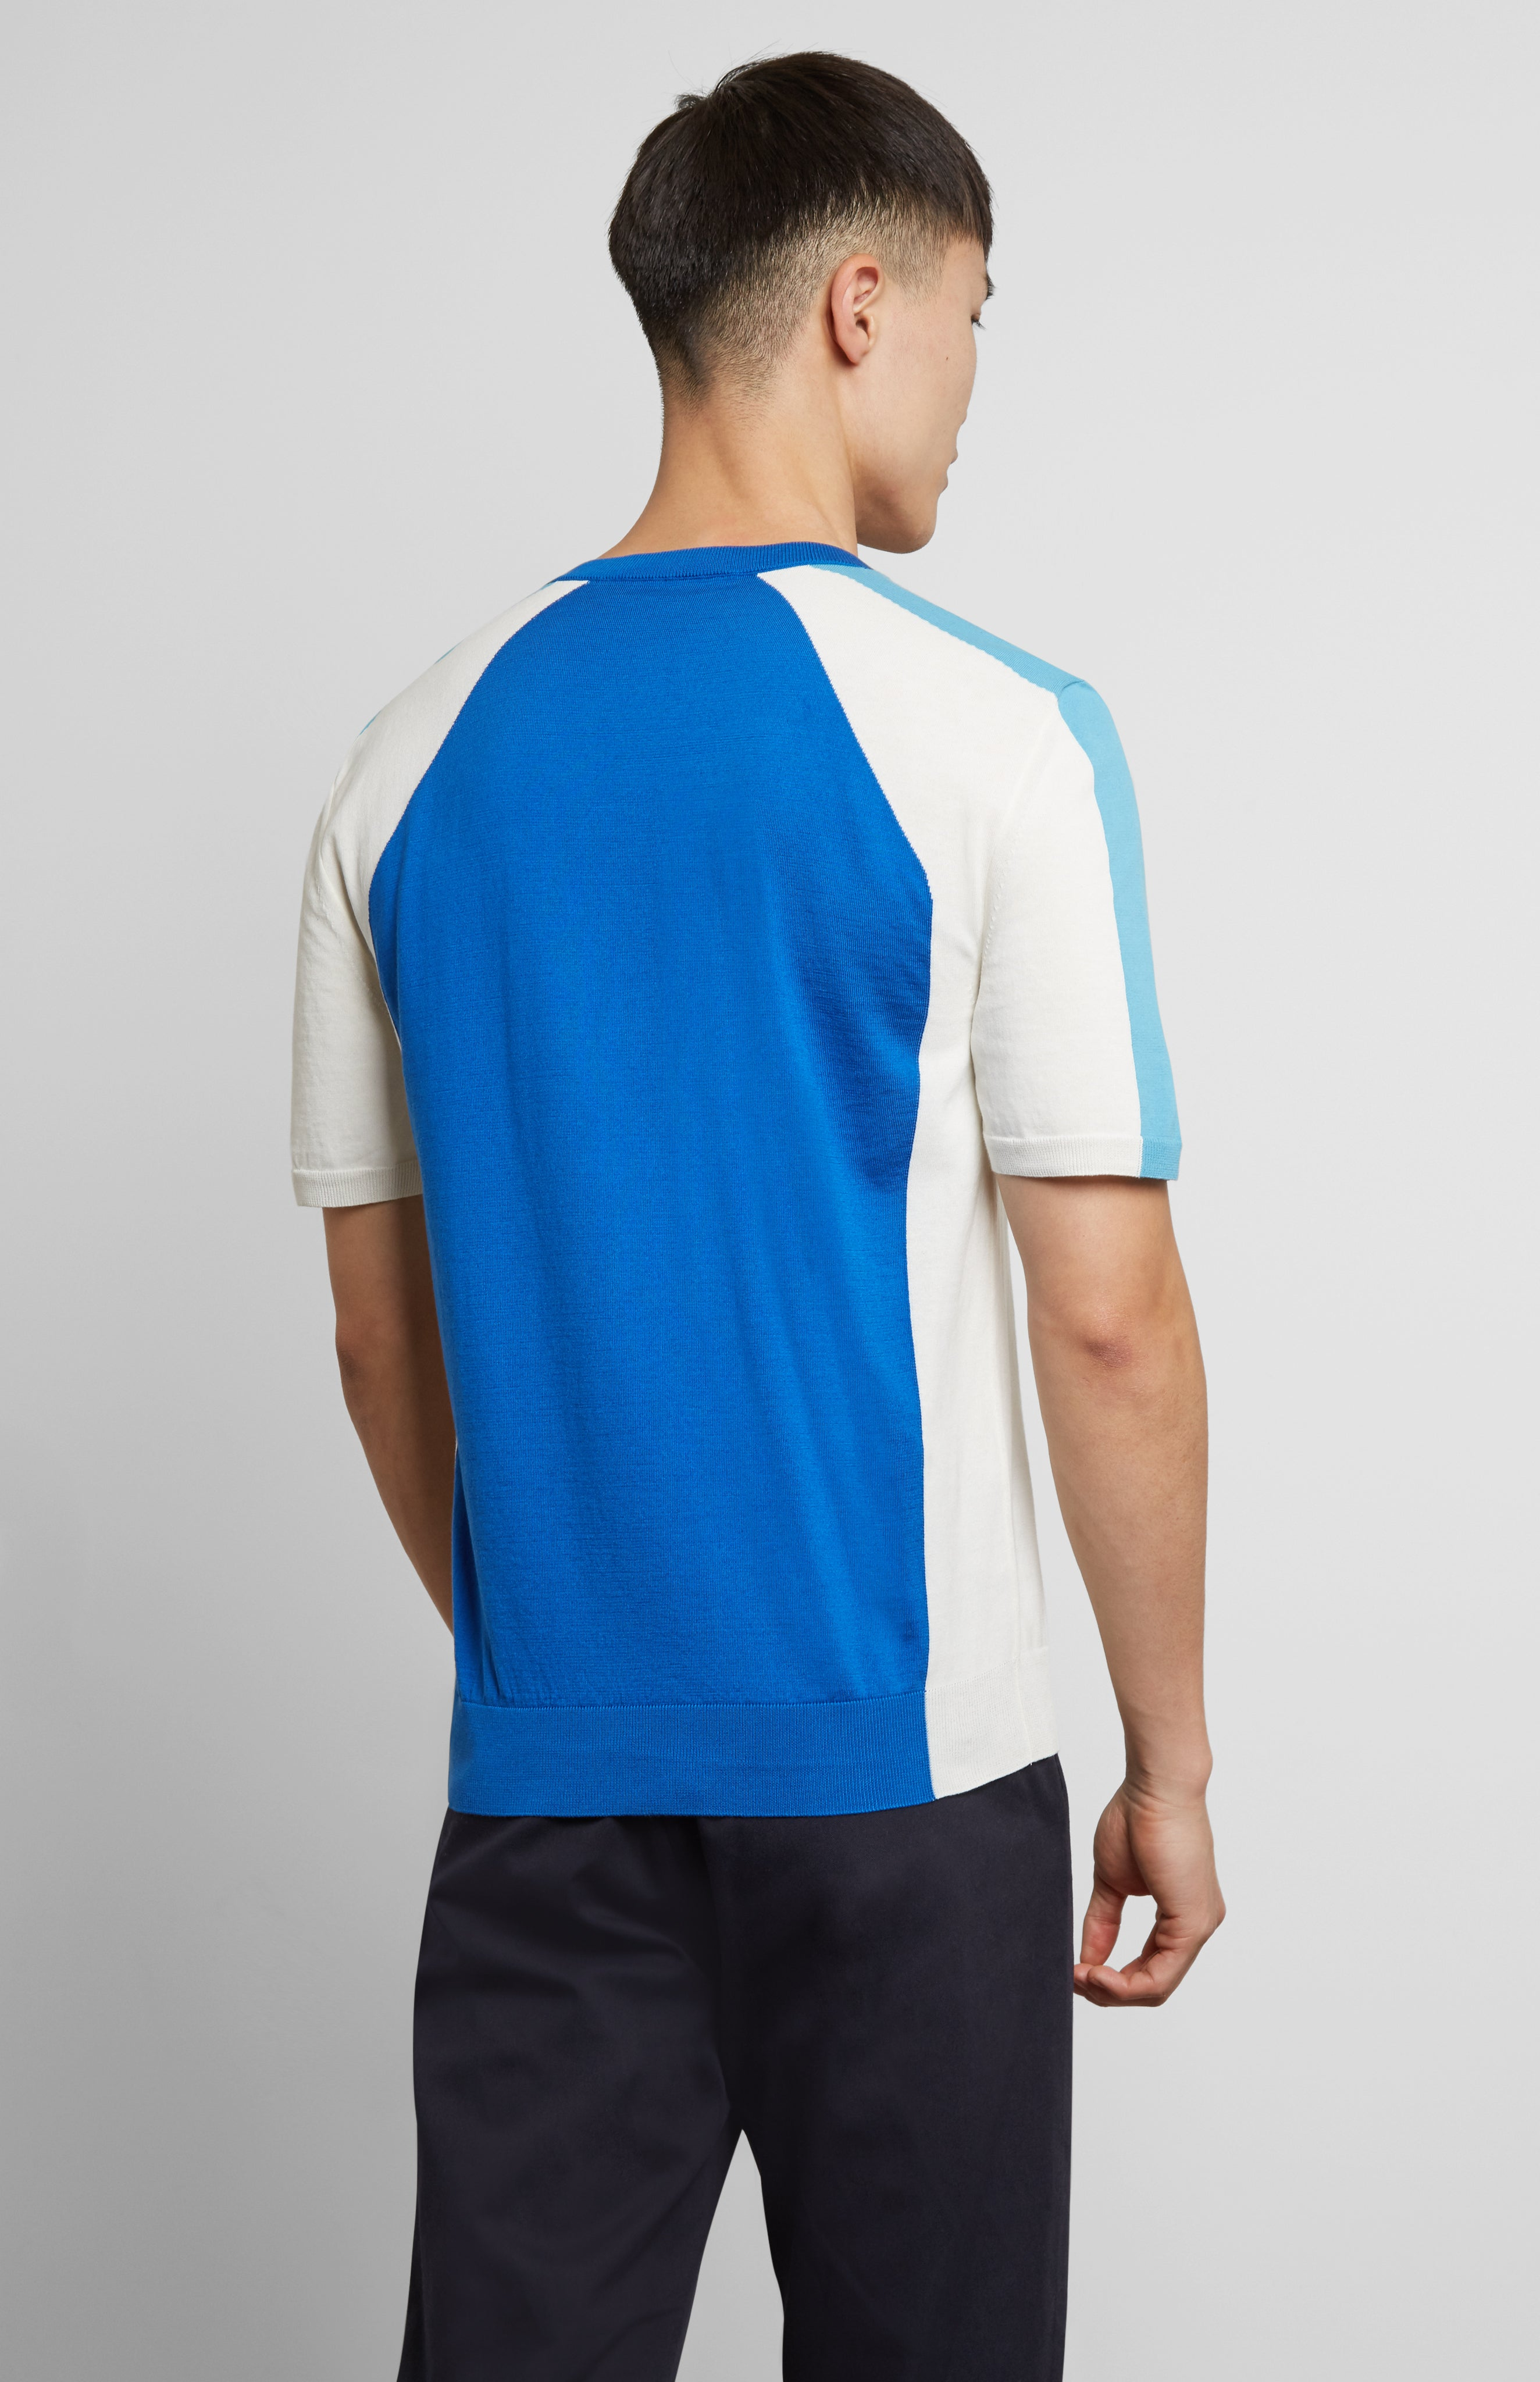 Colour Block Jersey In Blue/White